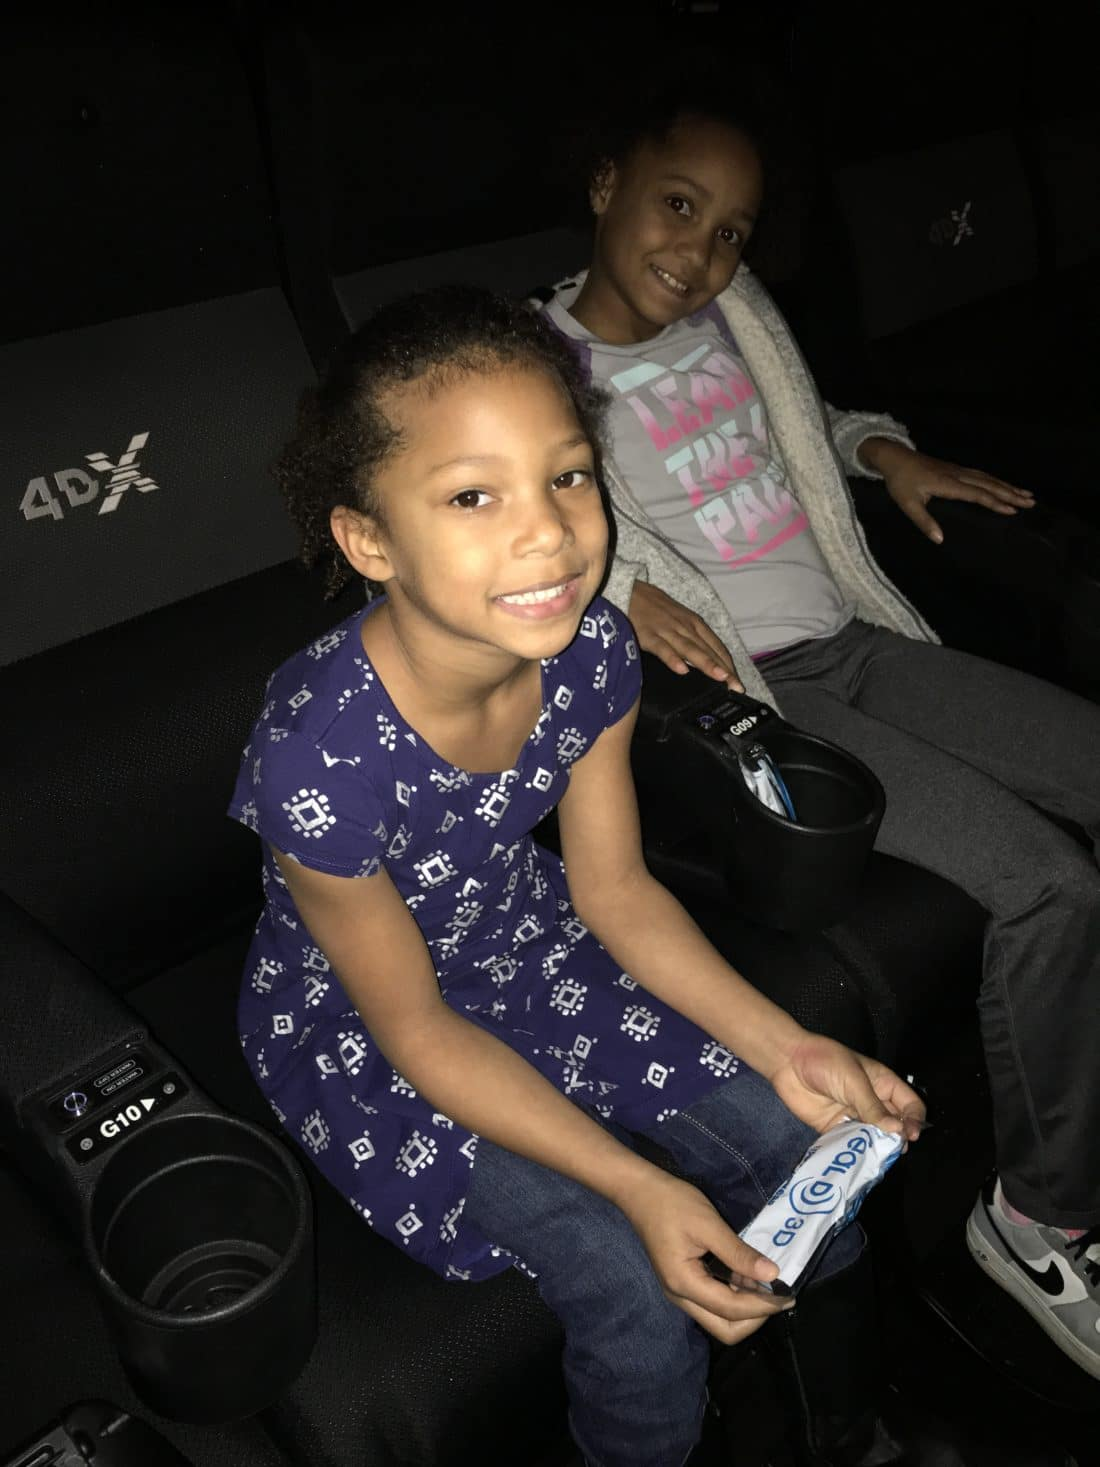 Regal Cinema 4dx Girls. Read about why everything is awesome with the new Regal Cinema 4DX Expierence for The LEGO Movie 2: The 2nd Part. Full review with photos.